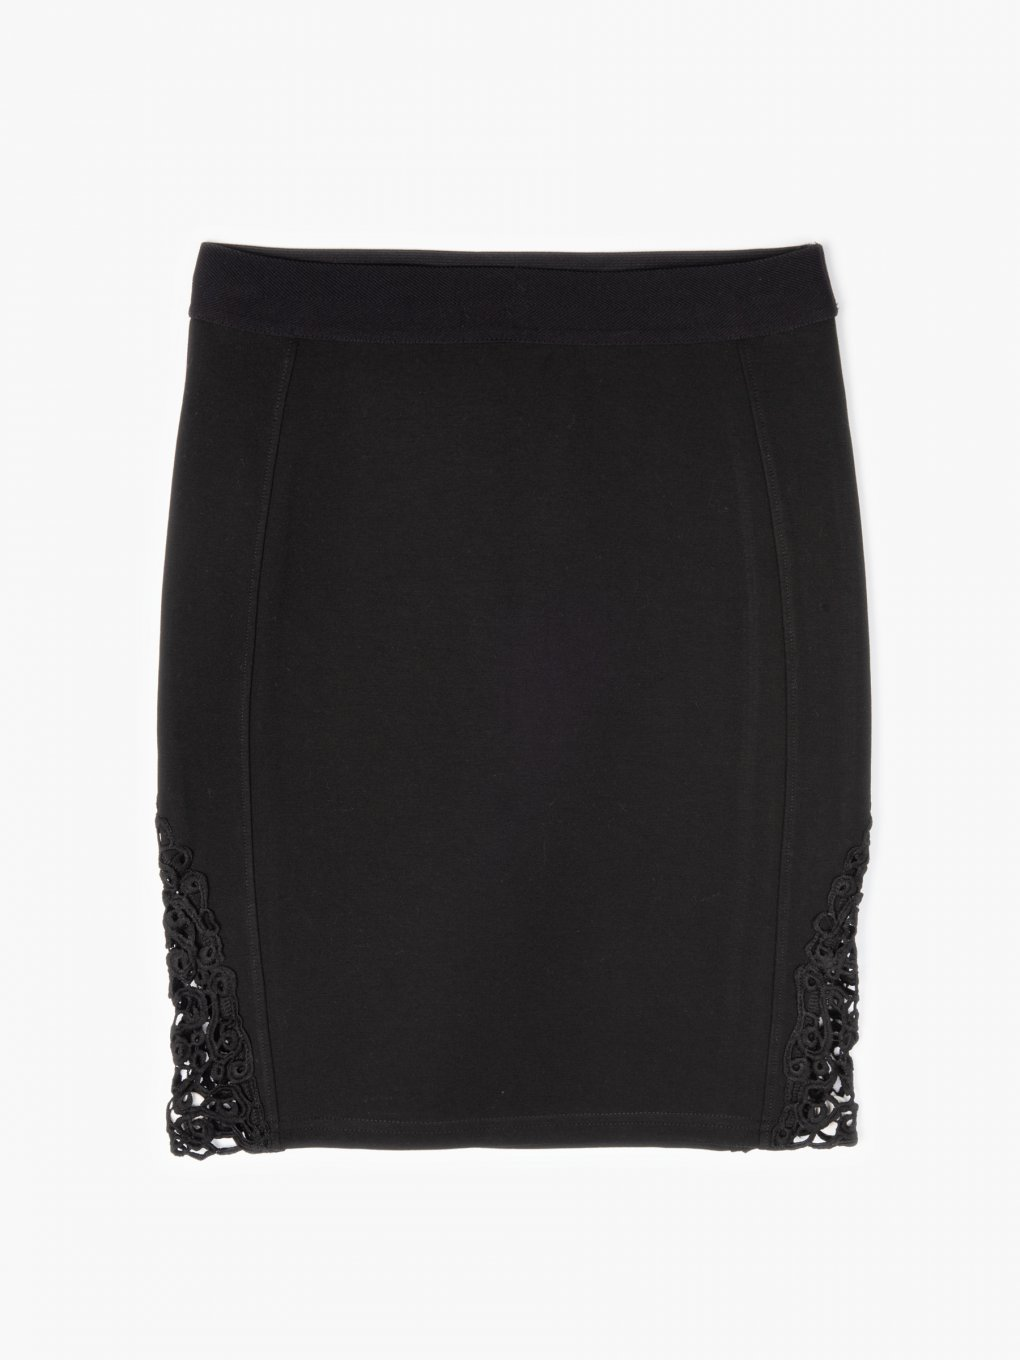 Bodycon skirt with lace detail